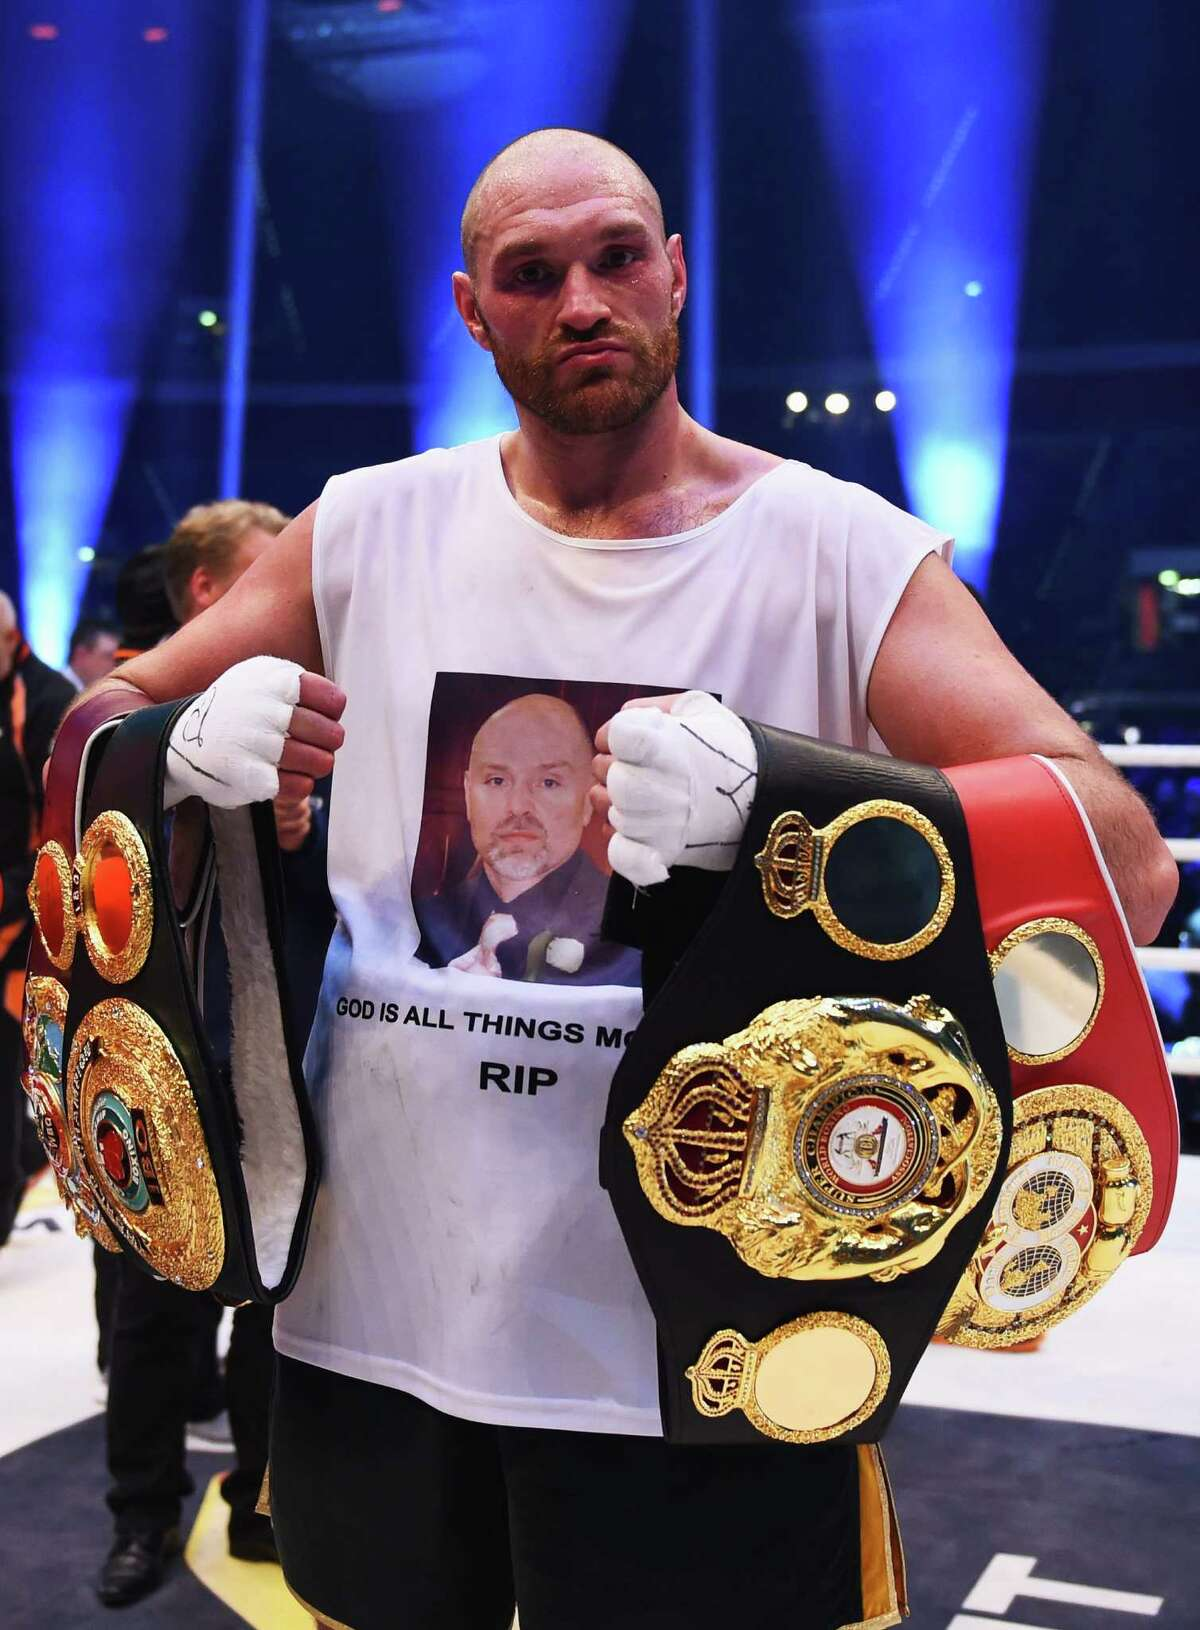 DUESSELDORF, GERMANY - NOVEMBER 28: Tyson Fury celebrates with title belts as he defeats Wladimir Klitschko to become new World Heavyweight Champion after the IBF IBO WBA WBO Heavyweight World Championship contest at Esprit-Arena on November 28, 2015 in Duesseldorf, Germany. (Photo by Lars Baron/Bongarts/Getty Images) ORG XMIT: 592603167